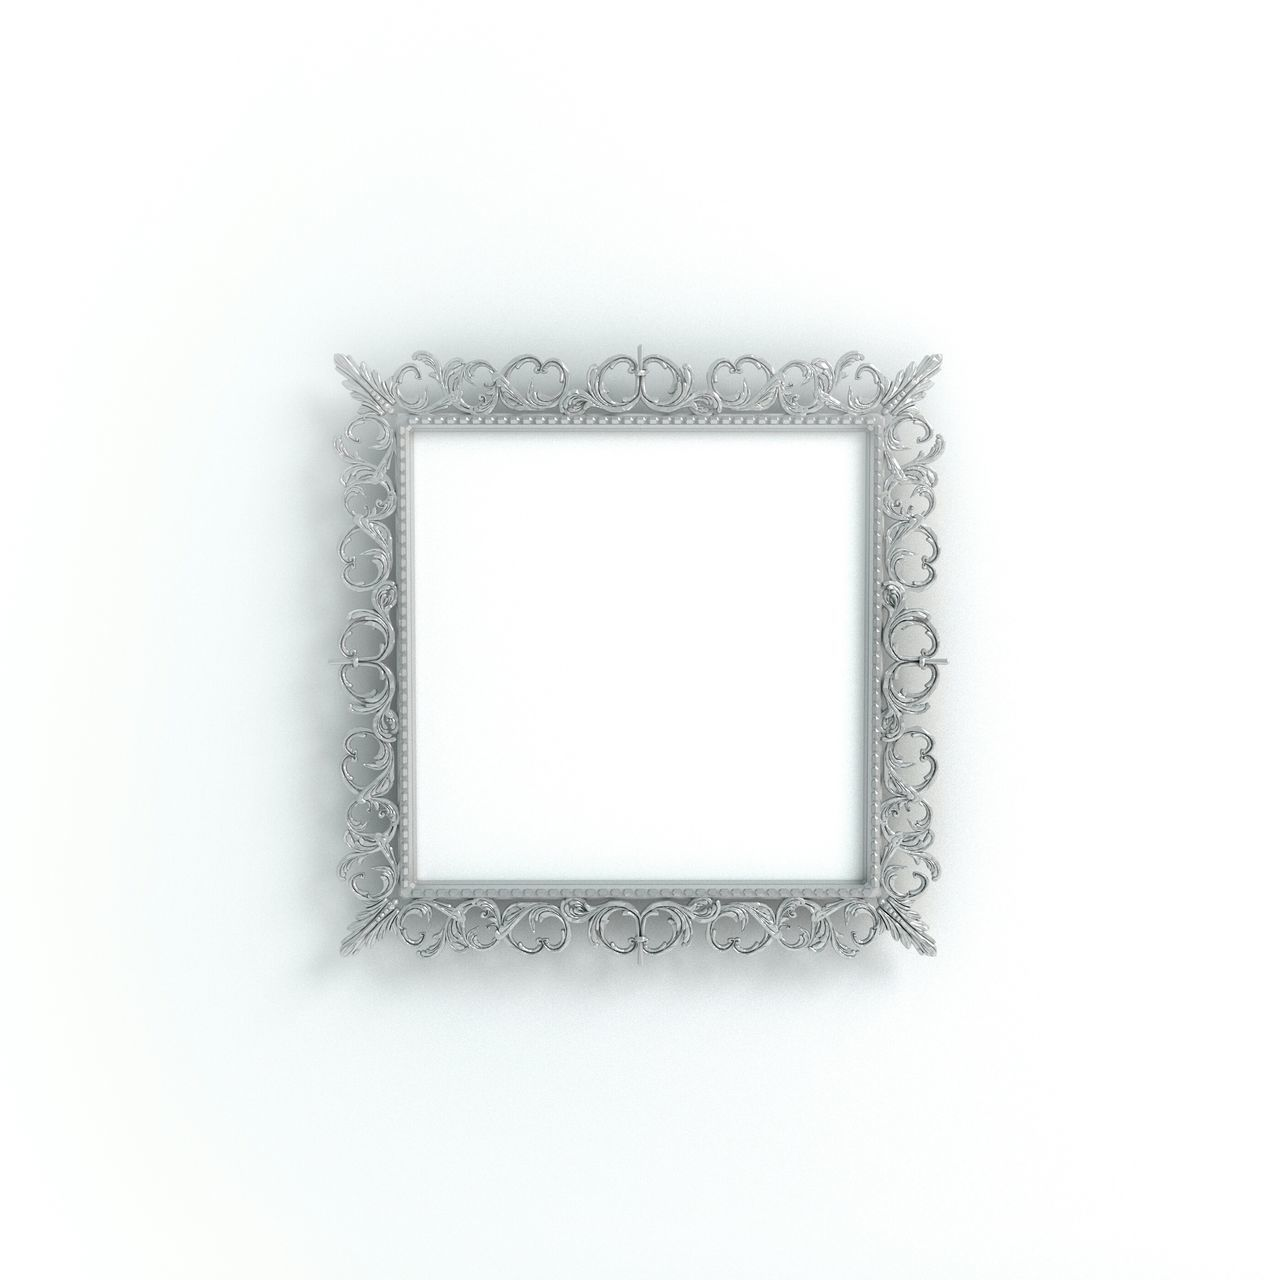 Frame Product Photography Blogphotography Photoframe Printshop Silver  Metal Square Baroque Stockphoto